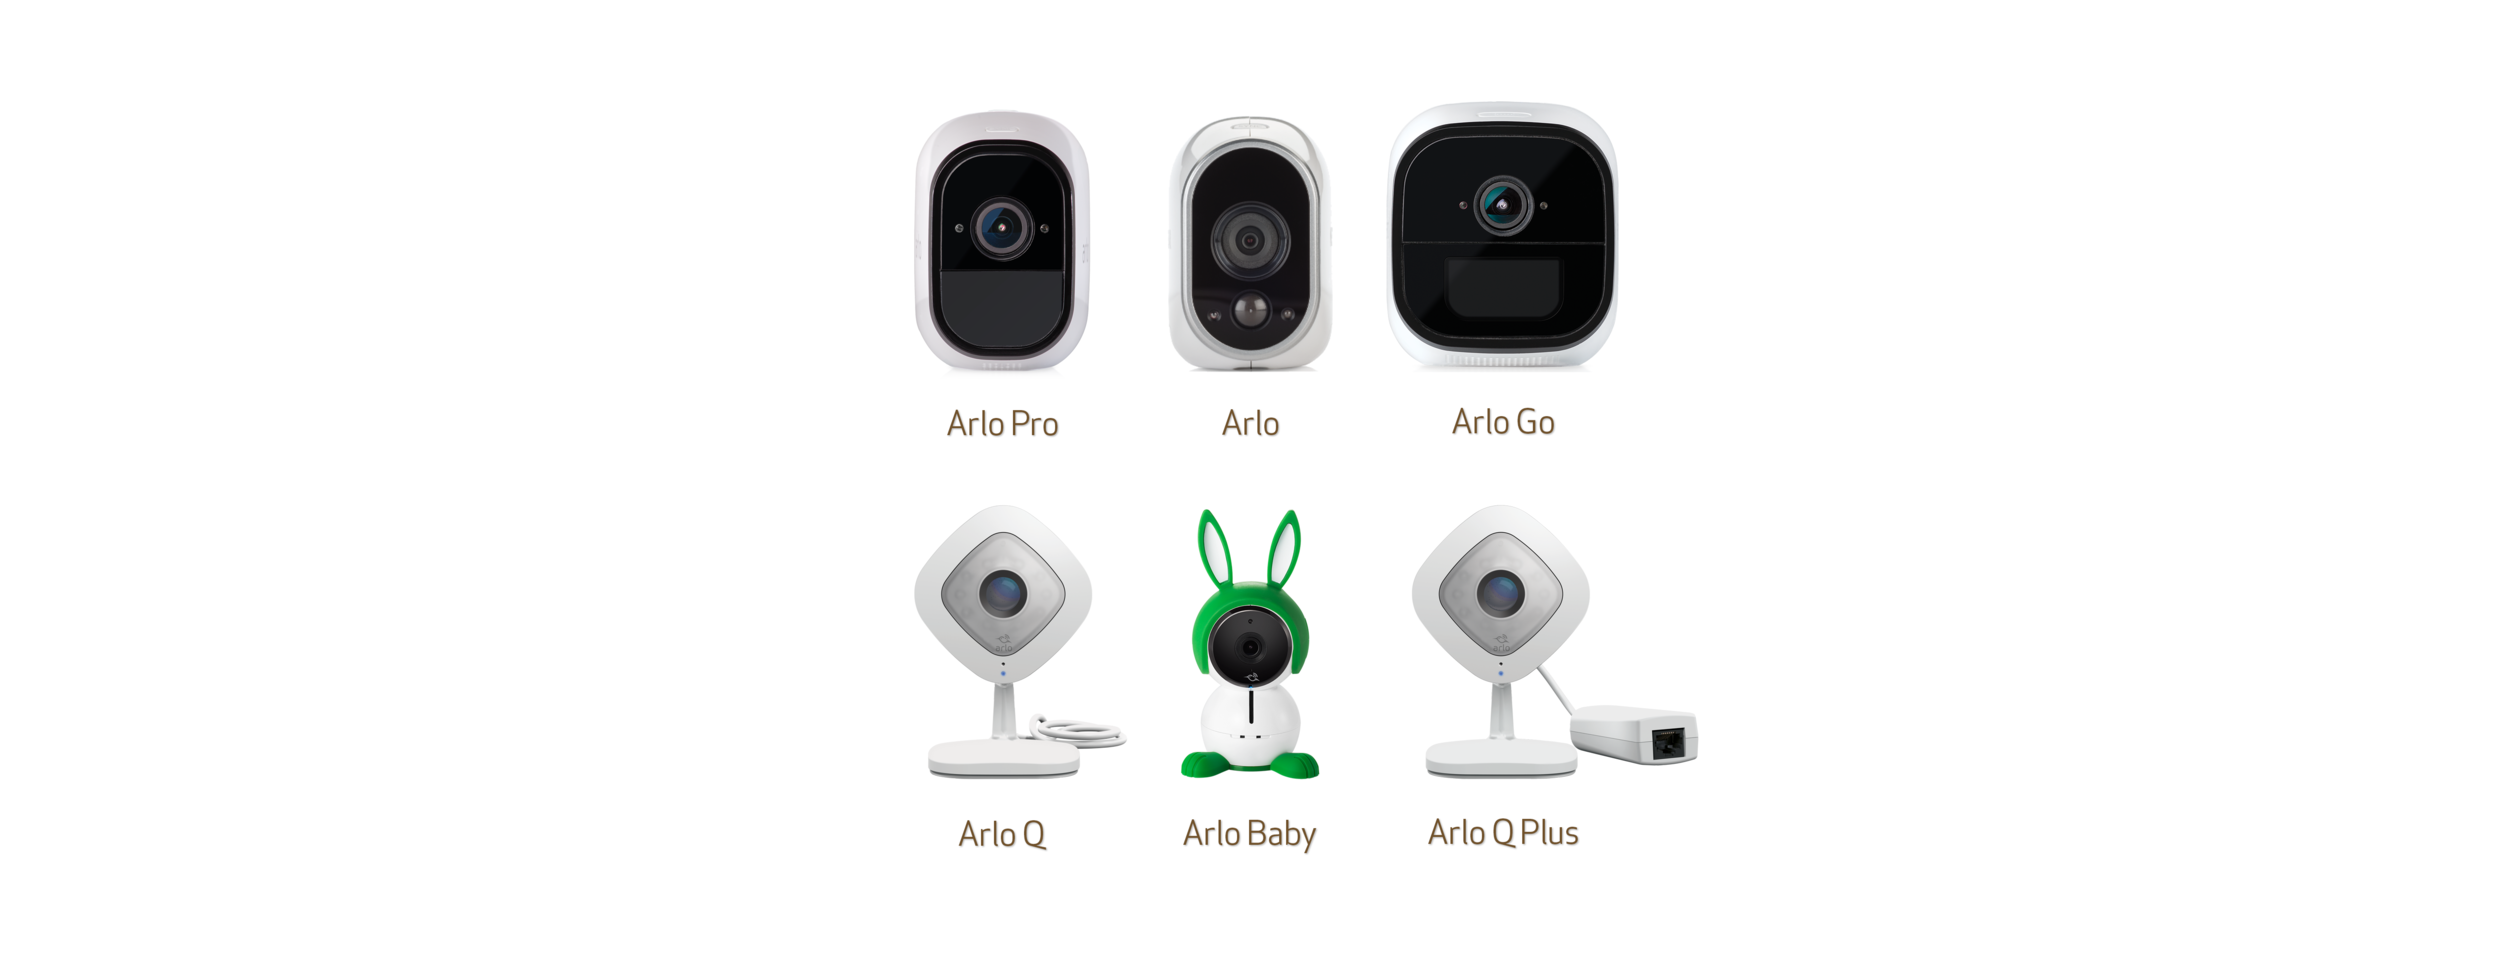 Arlo Product Line.png